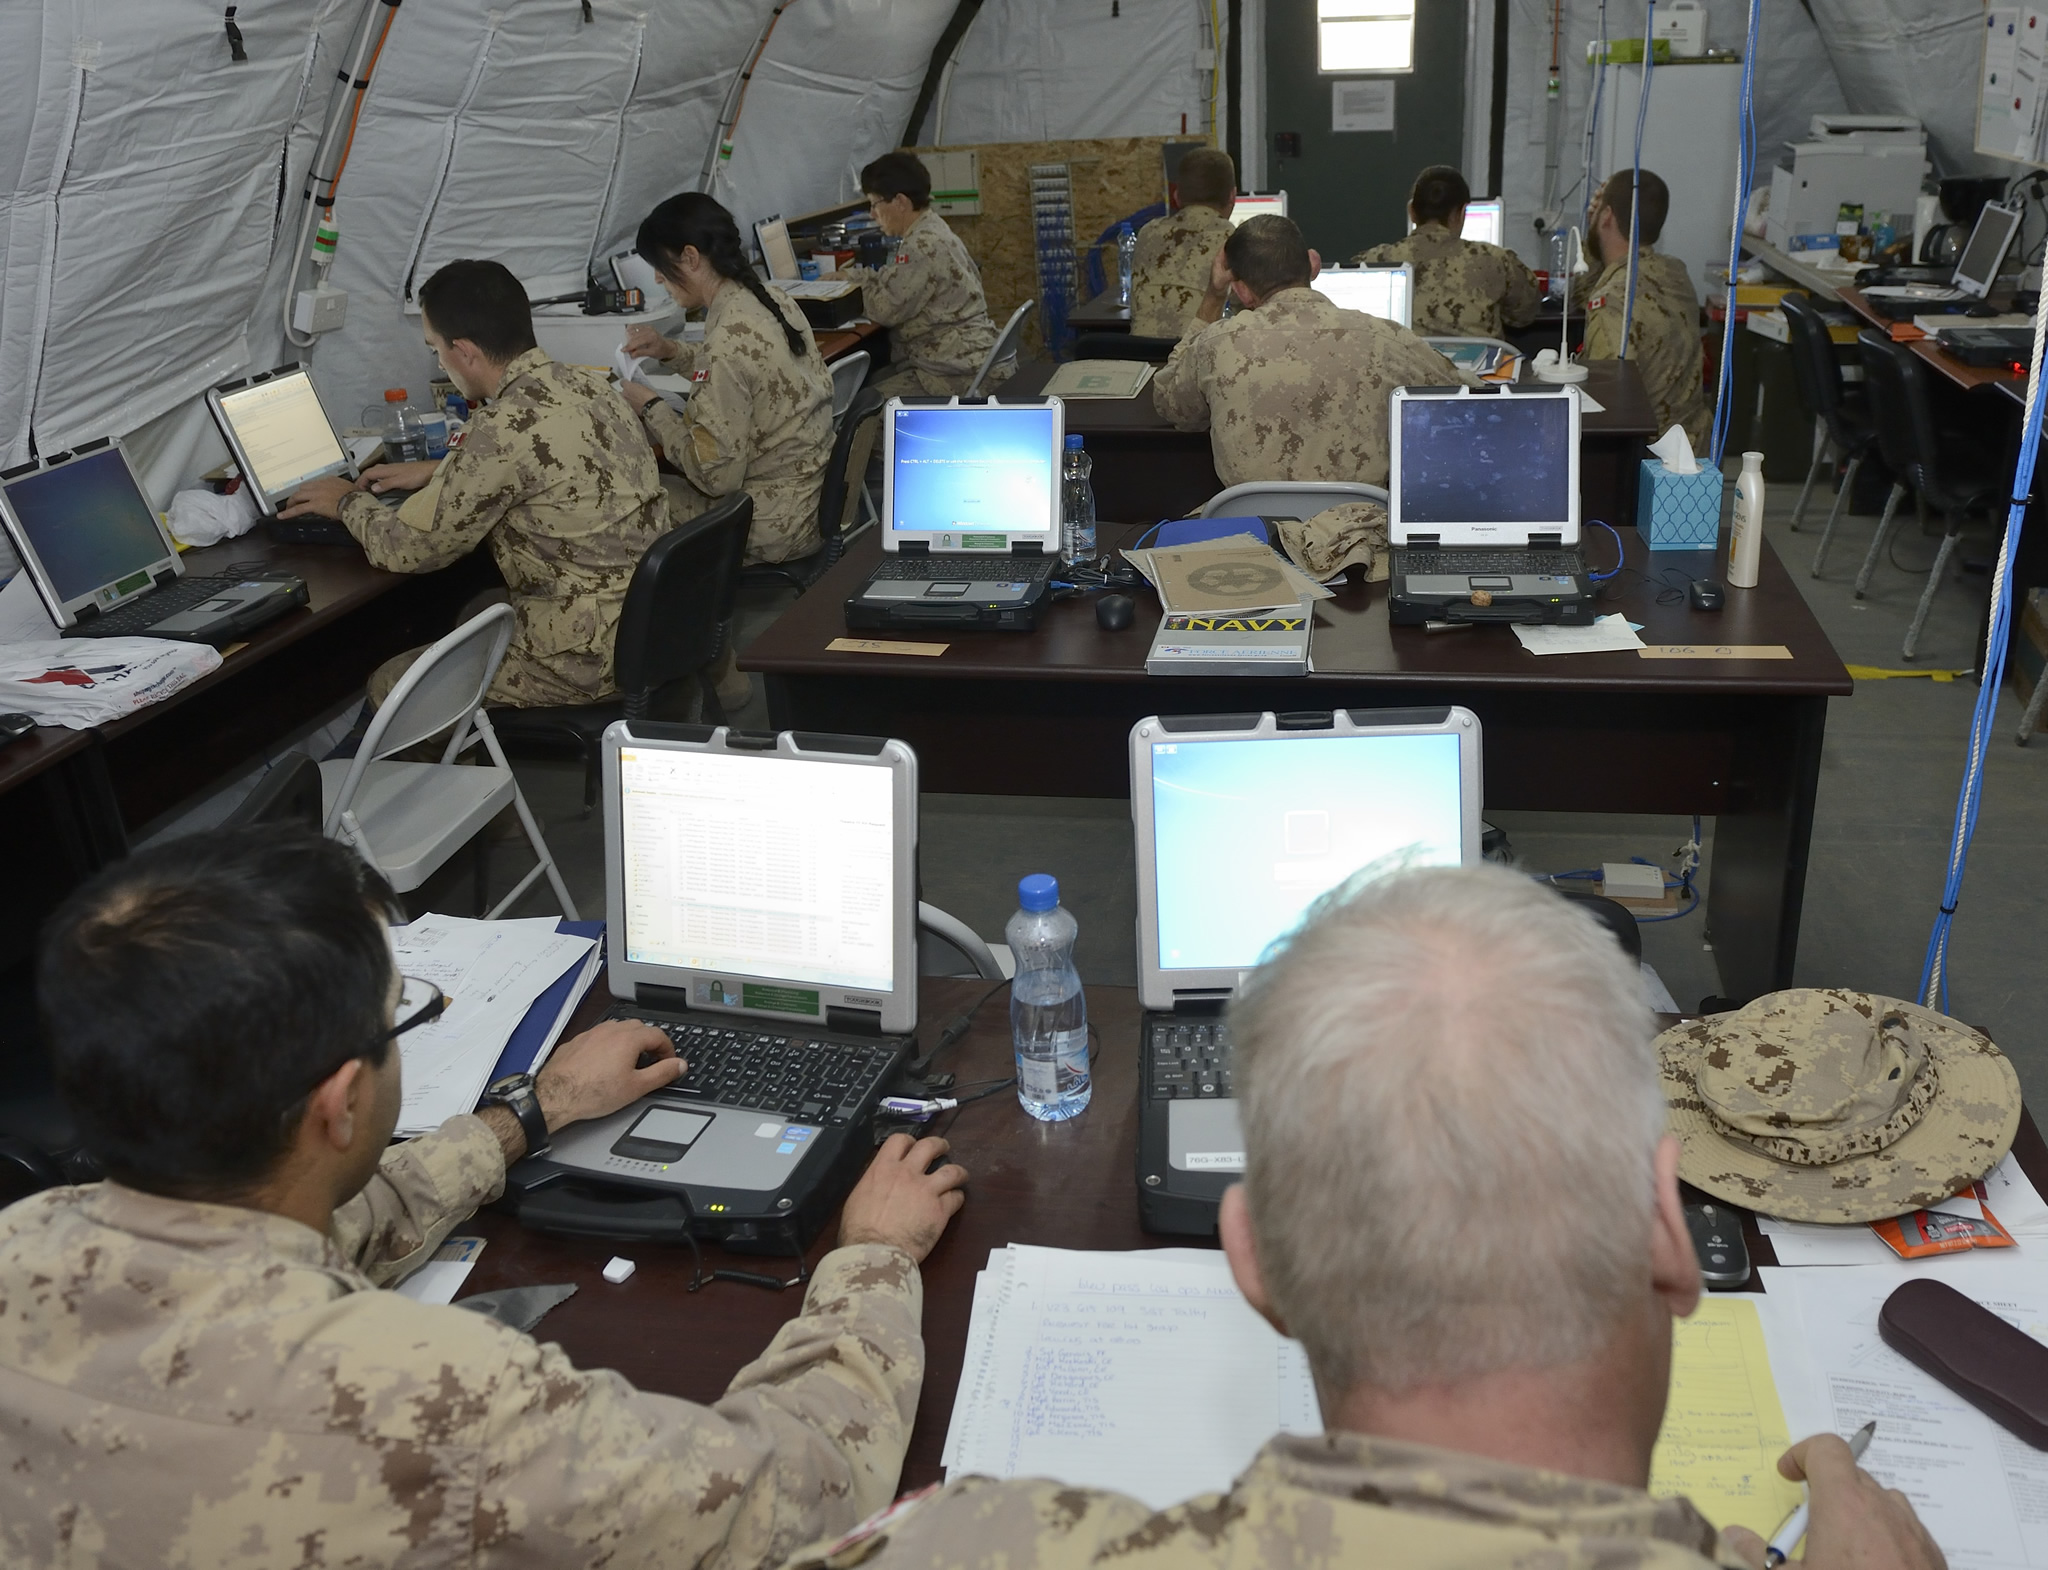 the impact of military technology in We know that emerging innovations within cutting-edge science and technology (s&t) areas carry the potential to revolutionize governmental structures, economies, and life as we know it yet, others have argued that such technologies could yield doomsday scenarios and that military applications of .